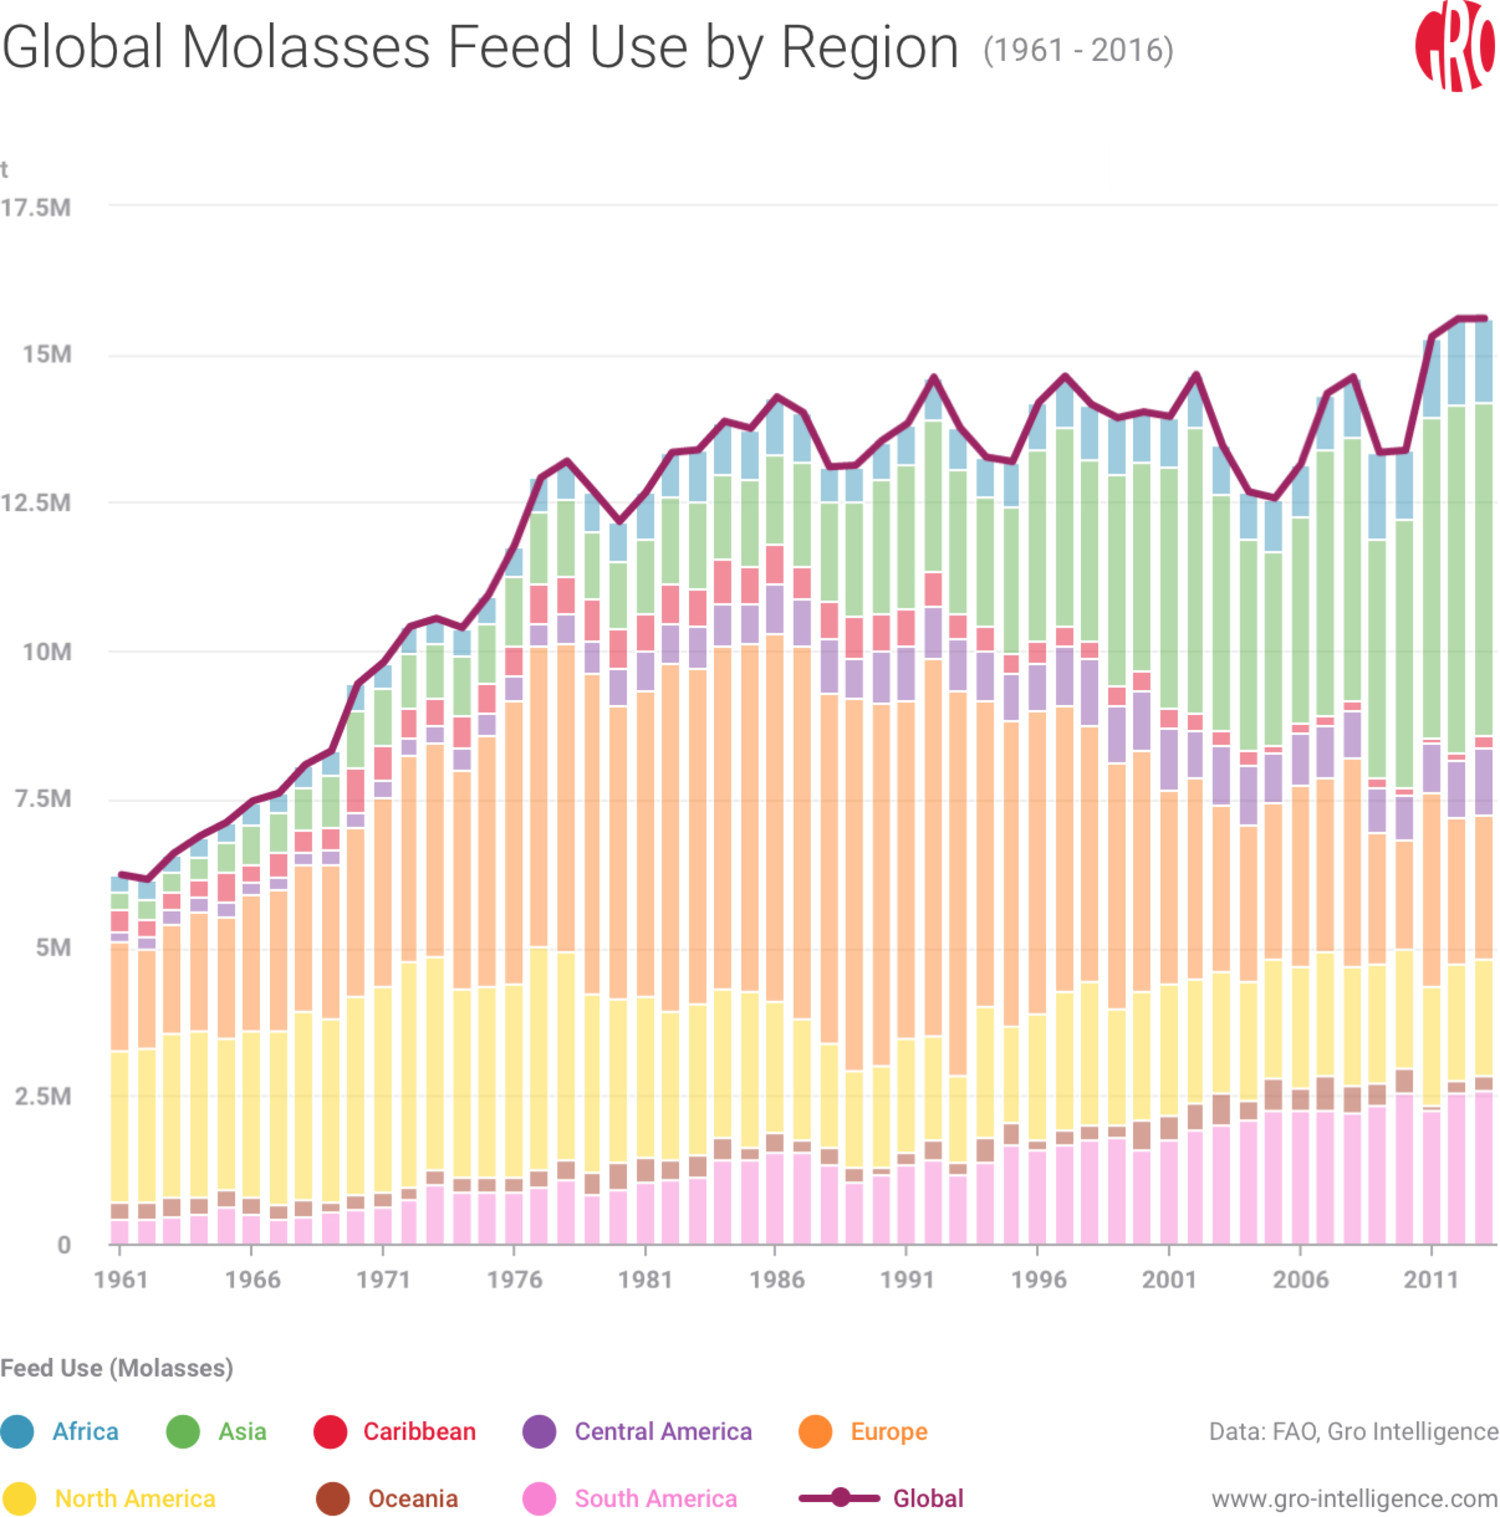 Global Molasses Feed Use by Region